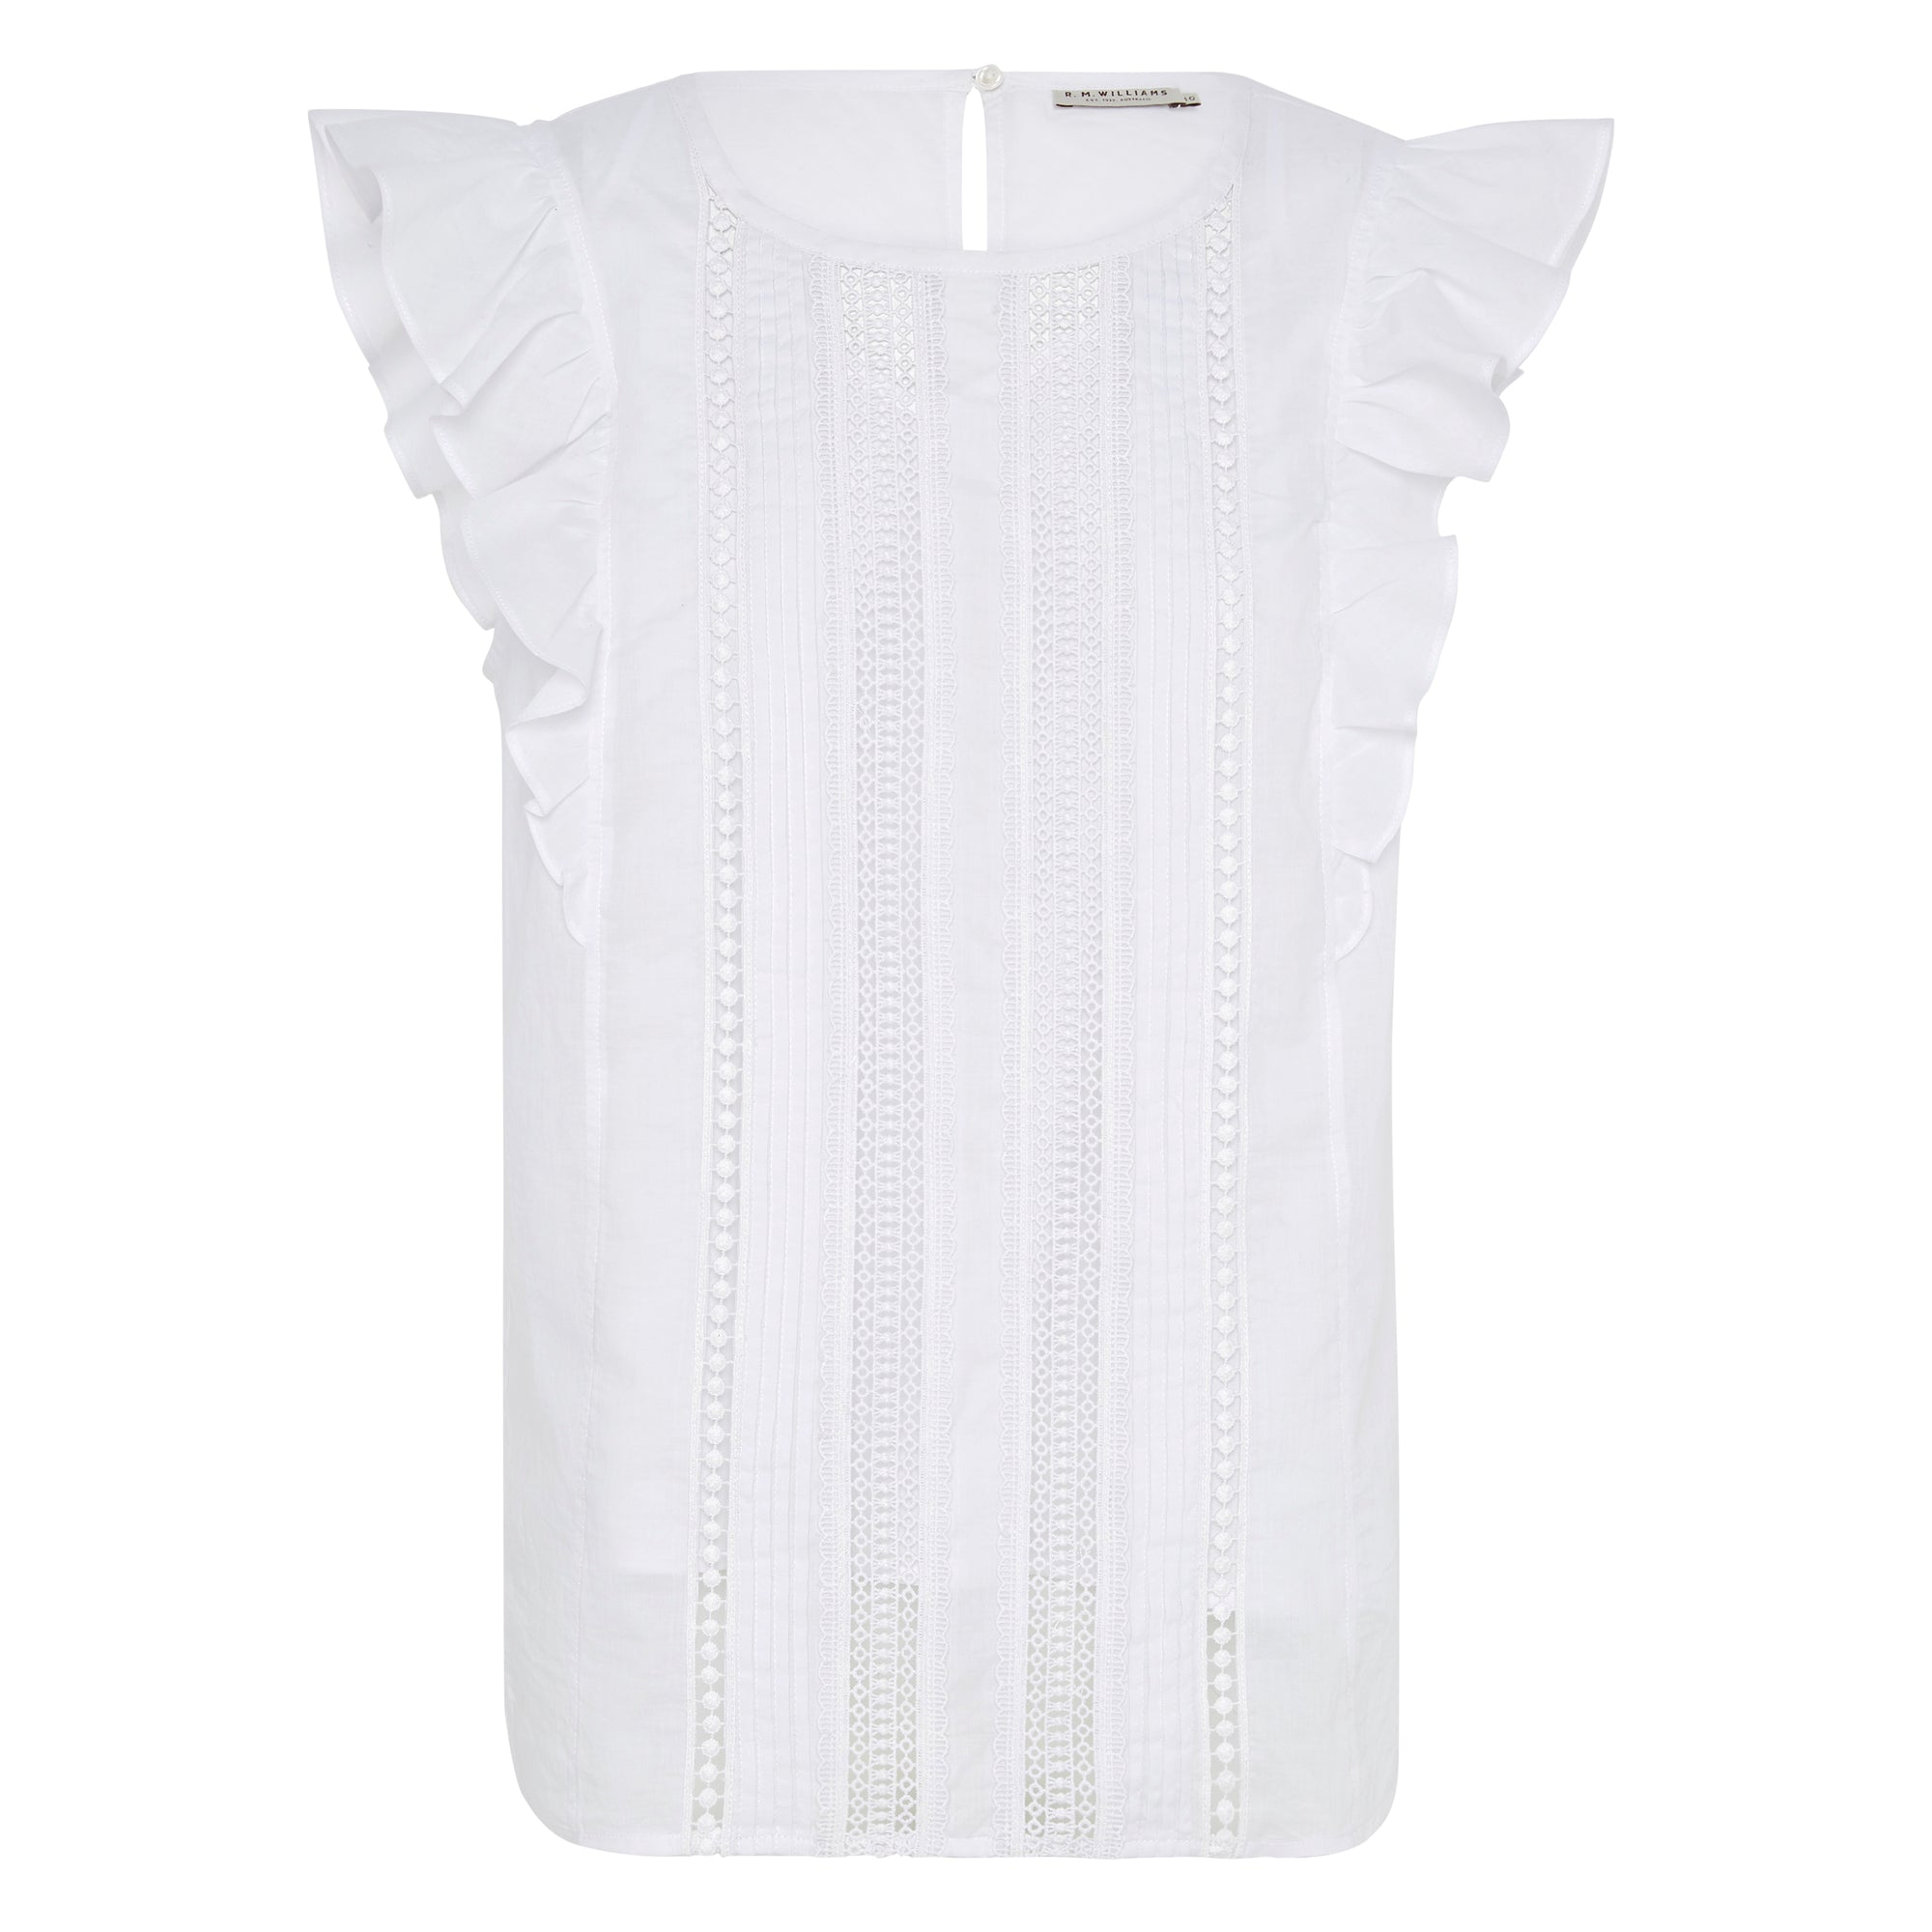 RM Williams Beverley Sleeveless Shirt